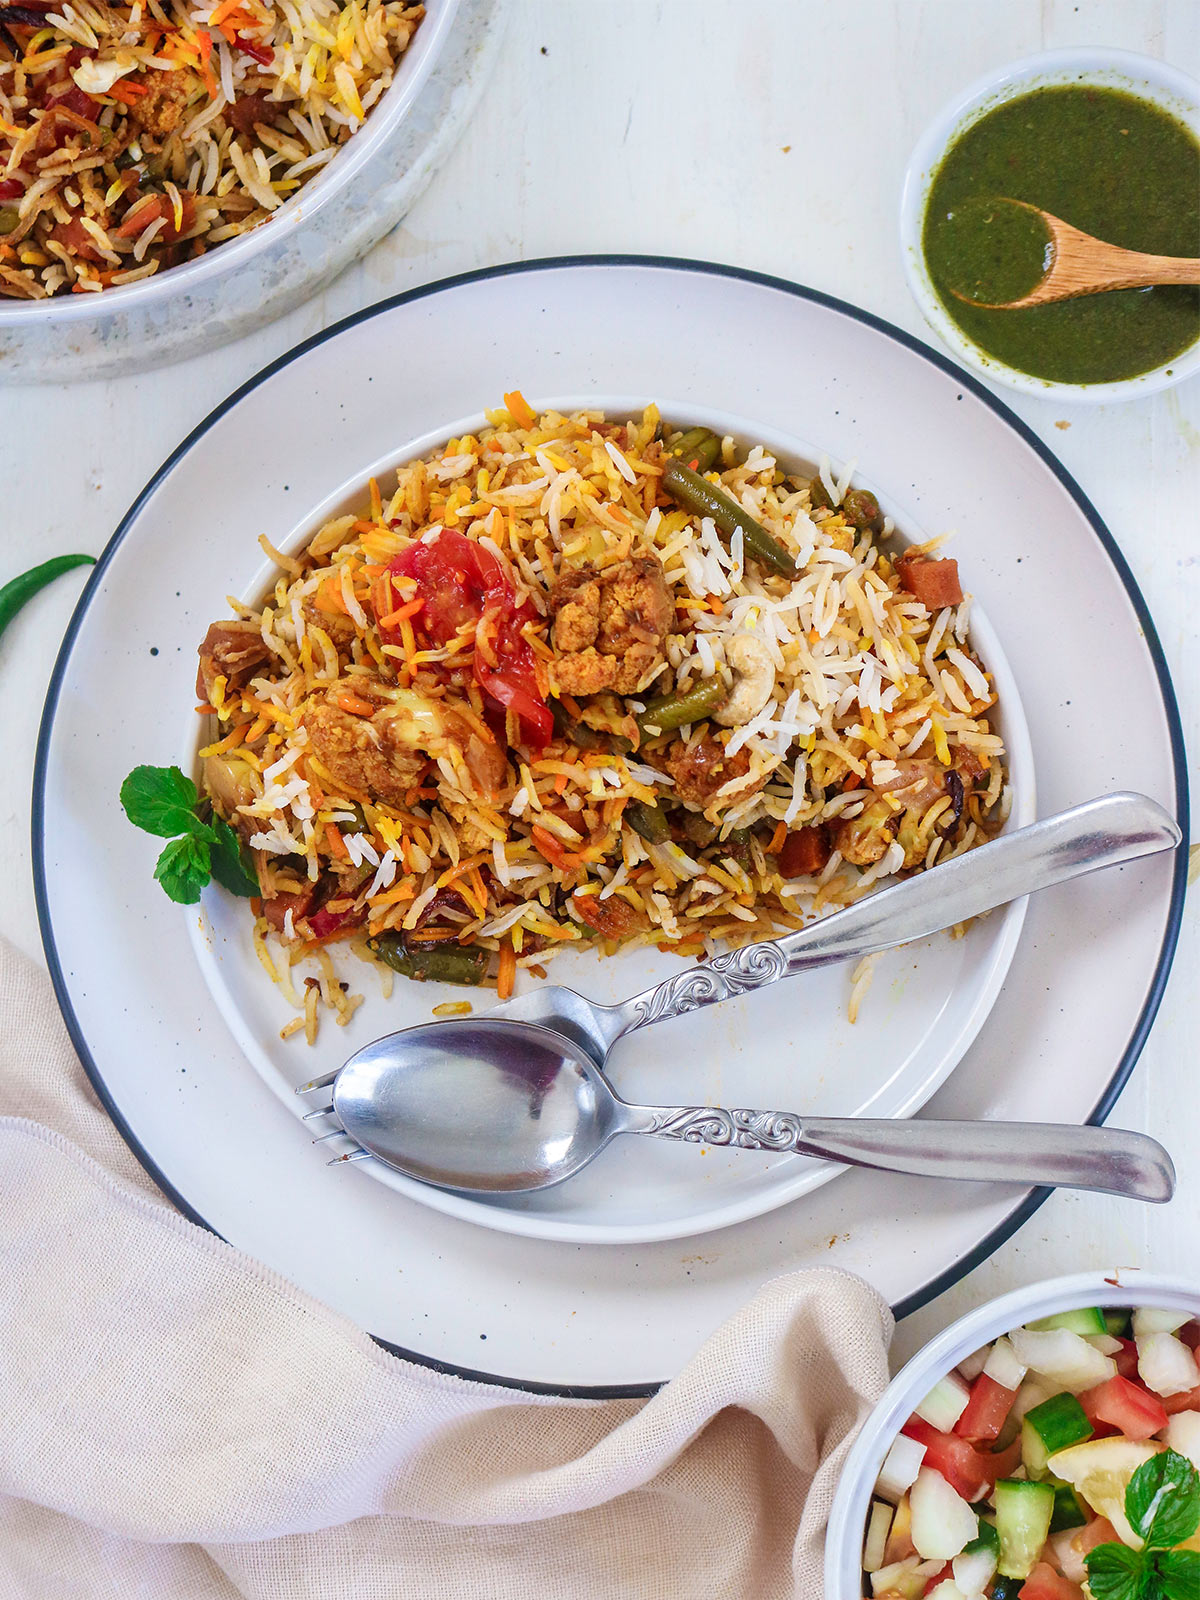 vegan biryani served in a plate with spoon and fork